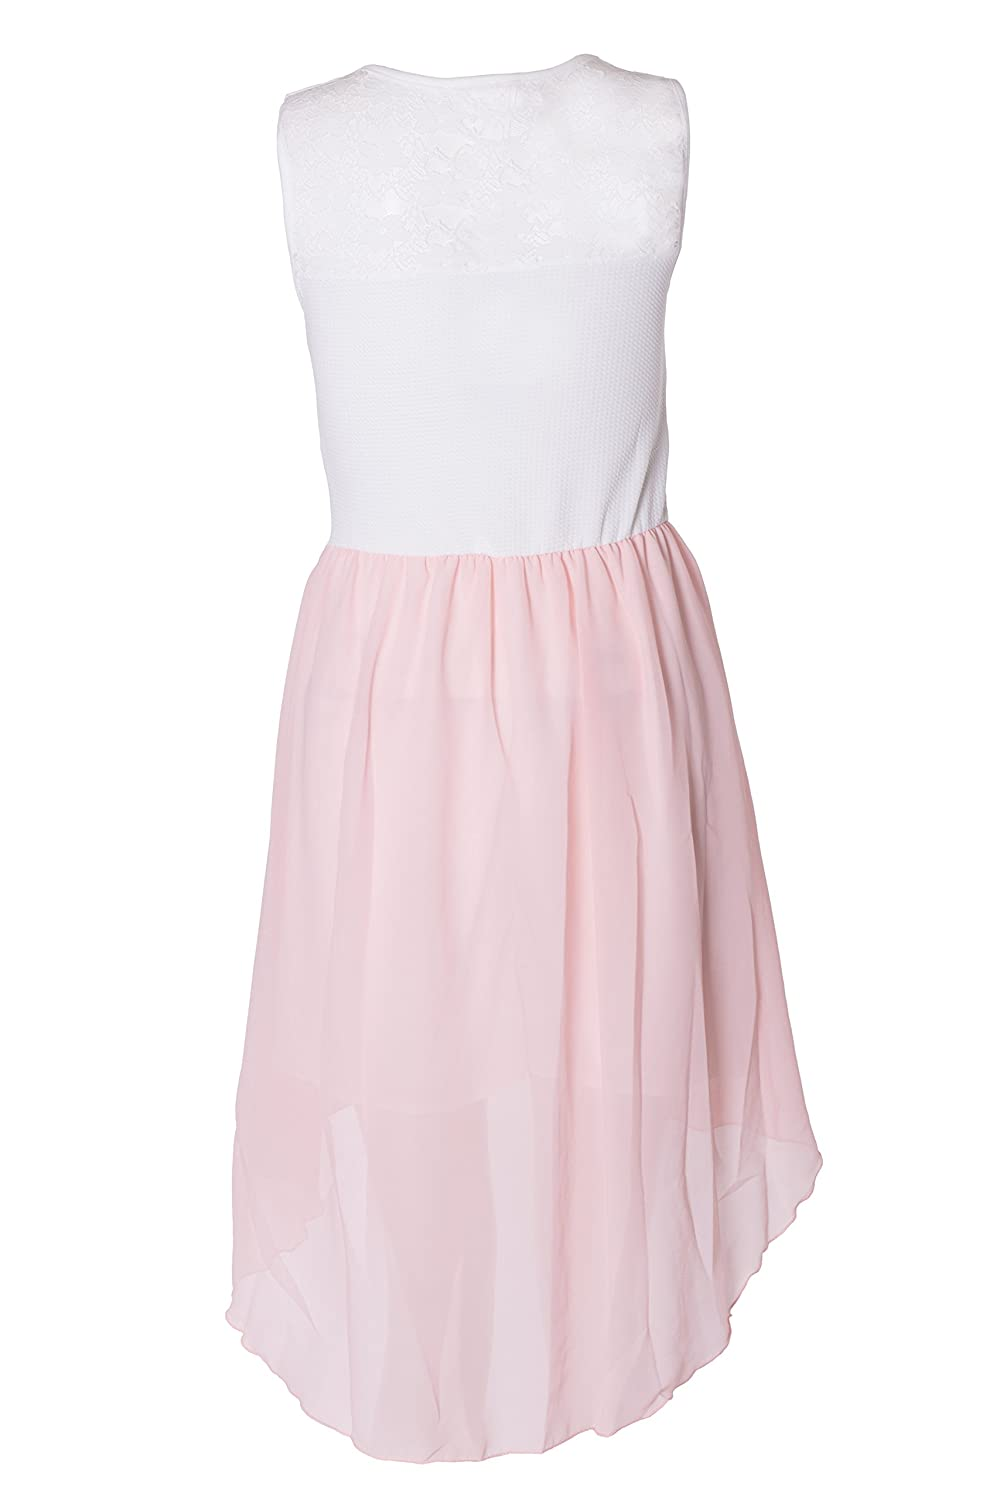 Girls Sleeveless Waist Band Asymmetrical Chiffon Dress with Neckless